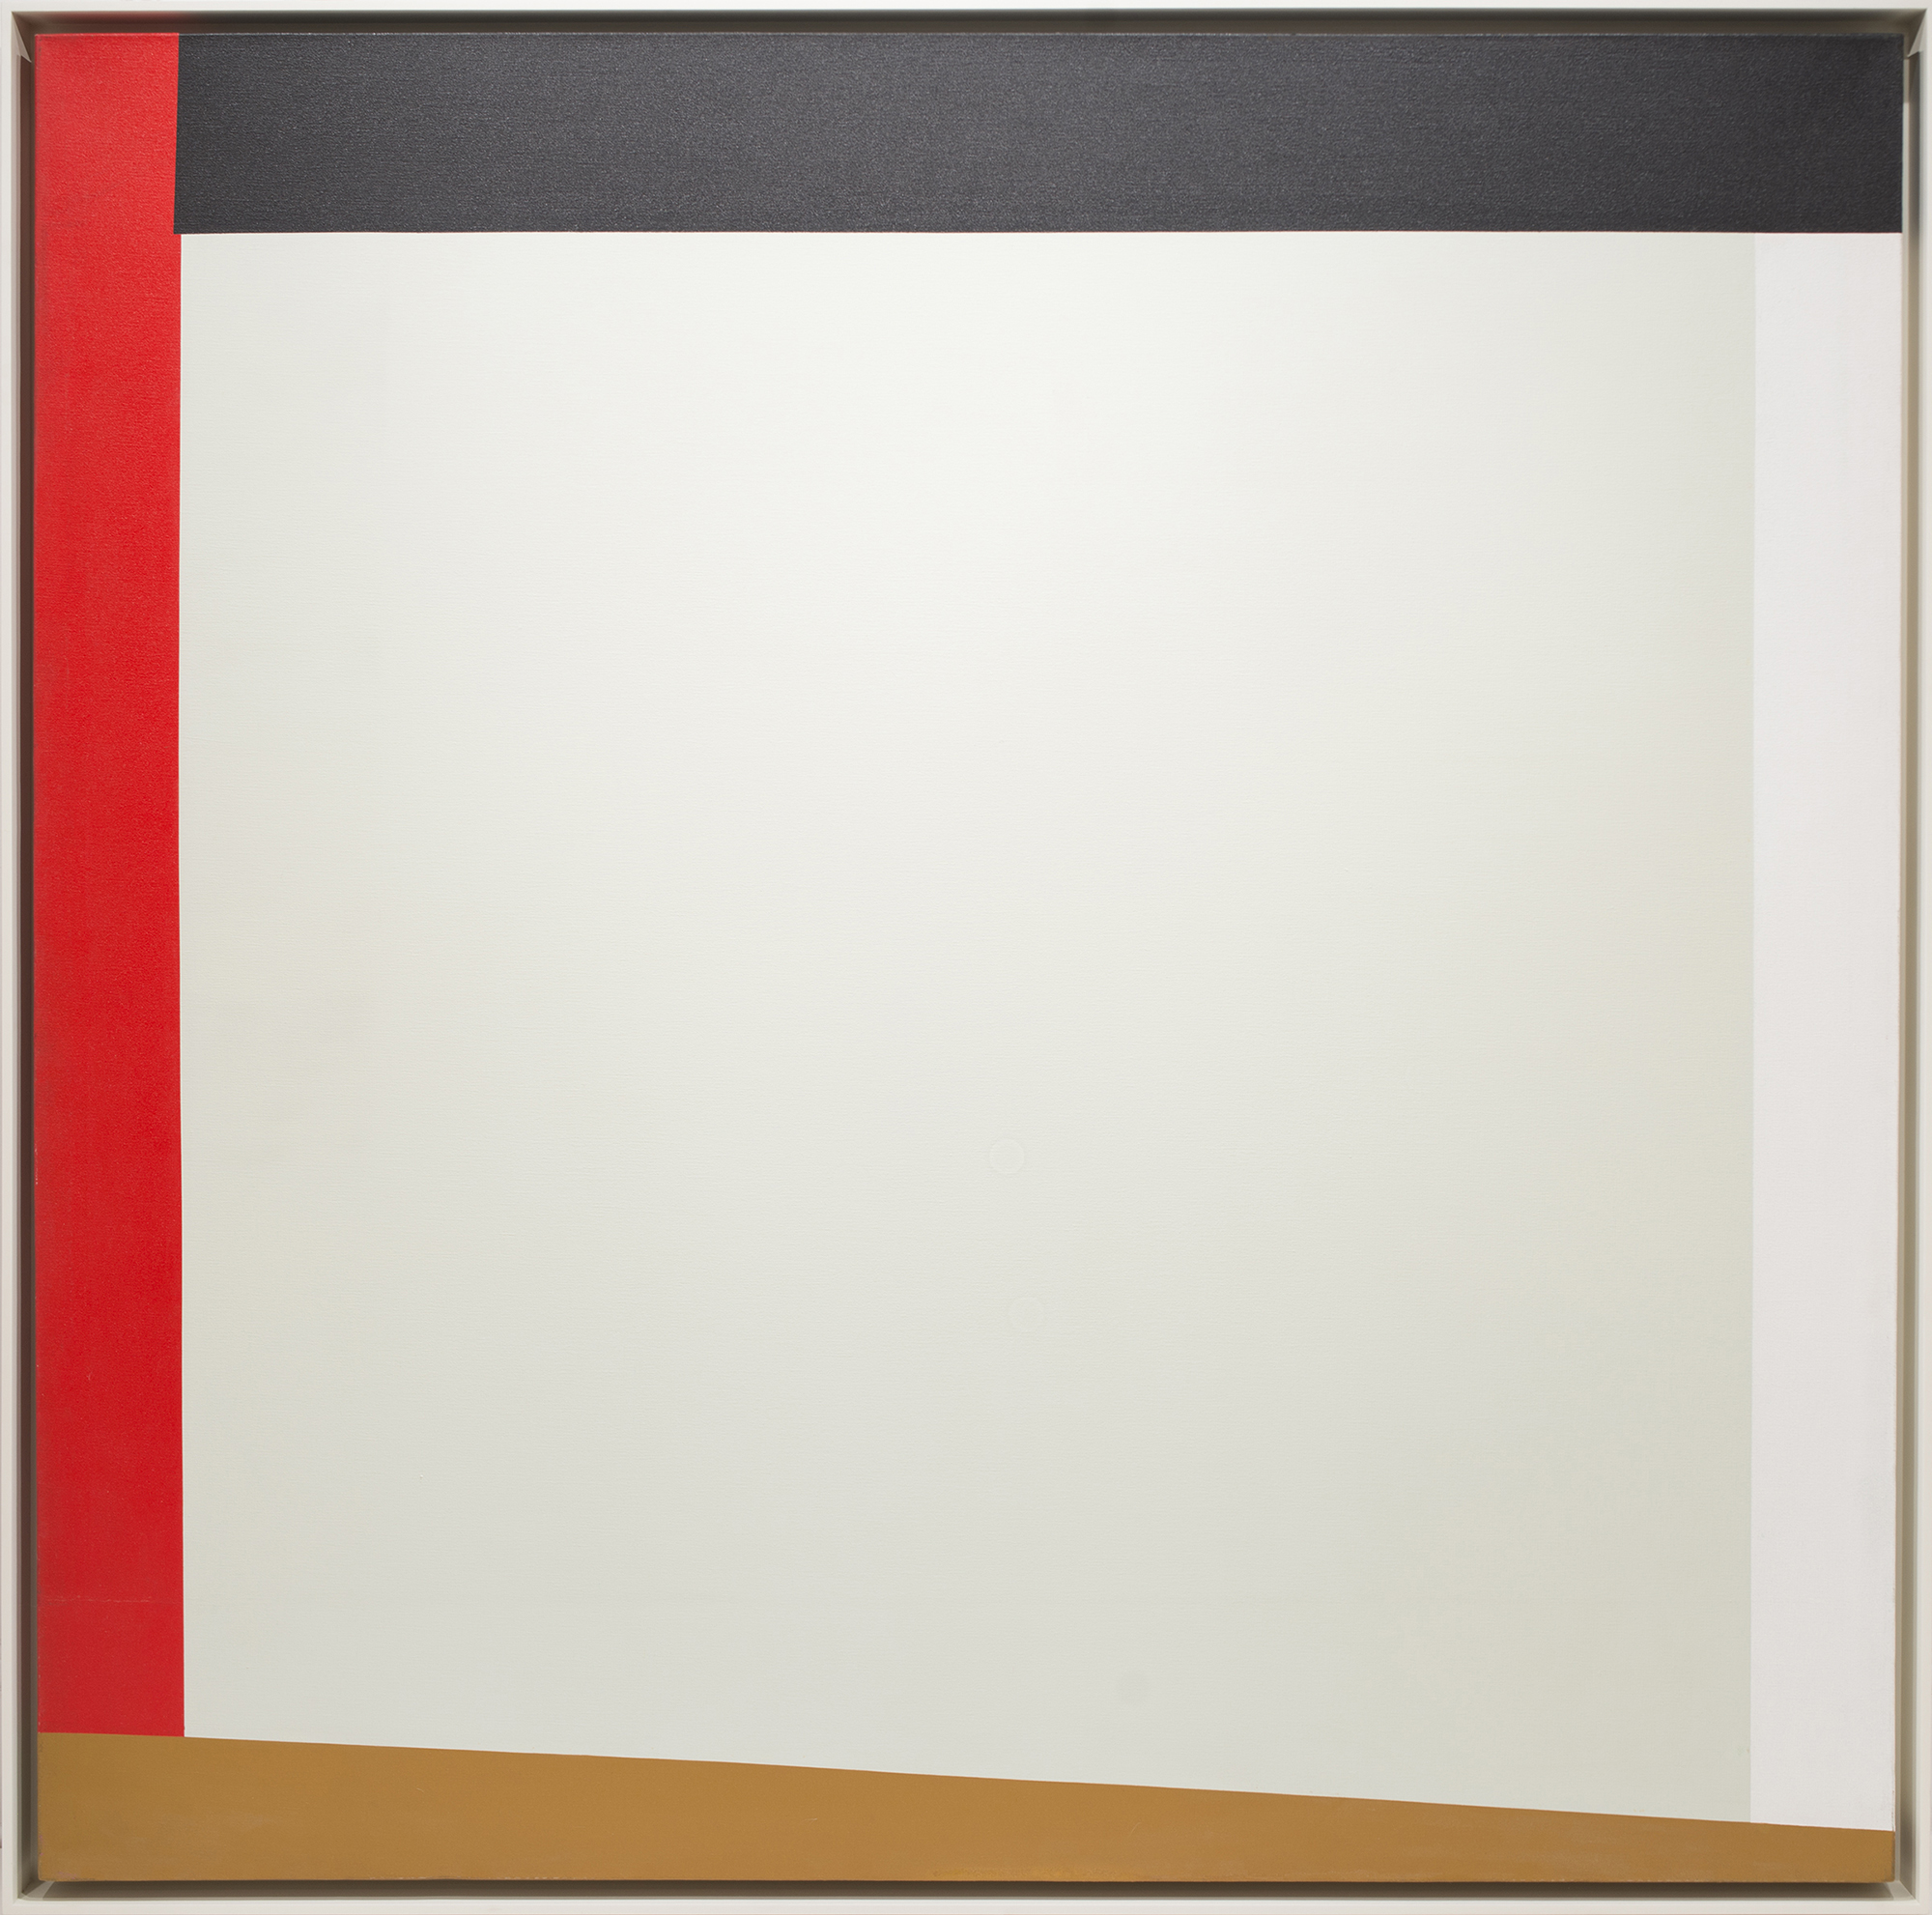 Untitled, 1972  , Acrylic on canvas, 60 x 60 inches